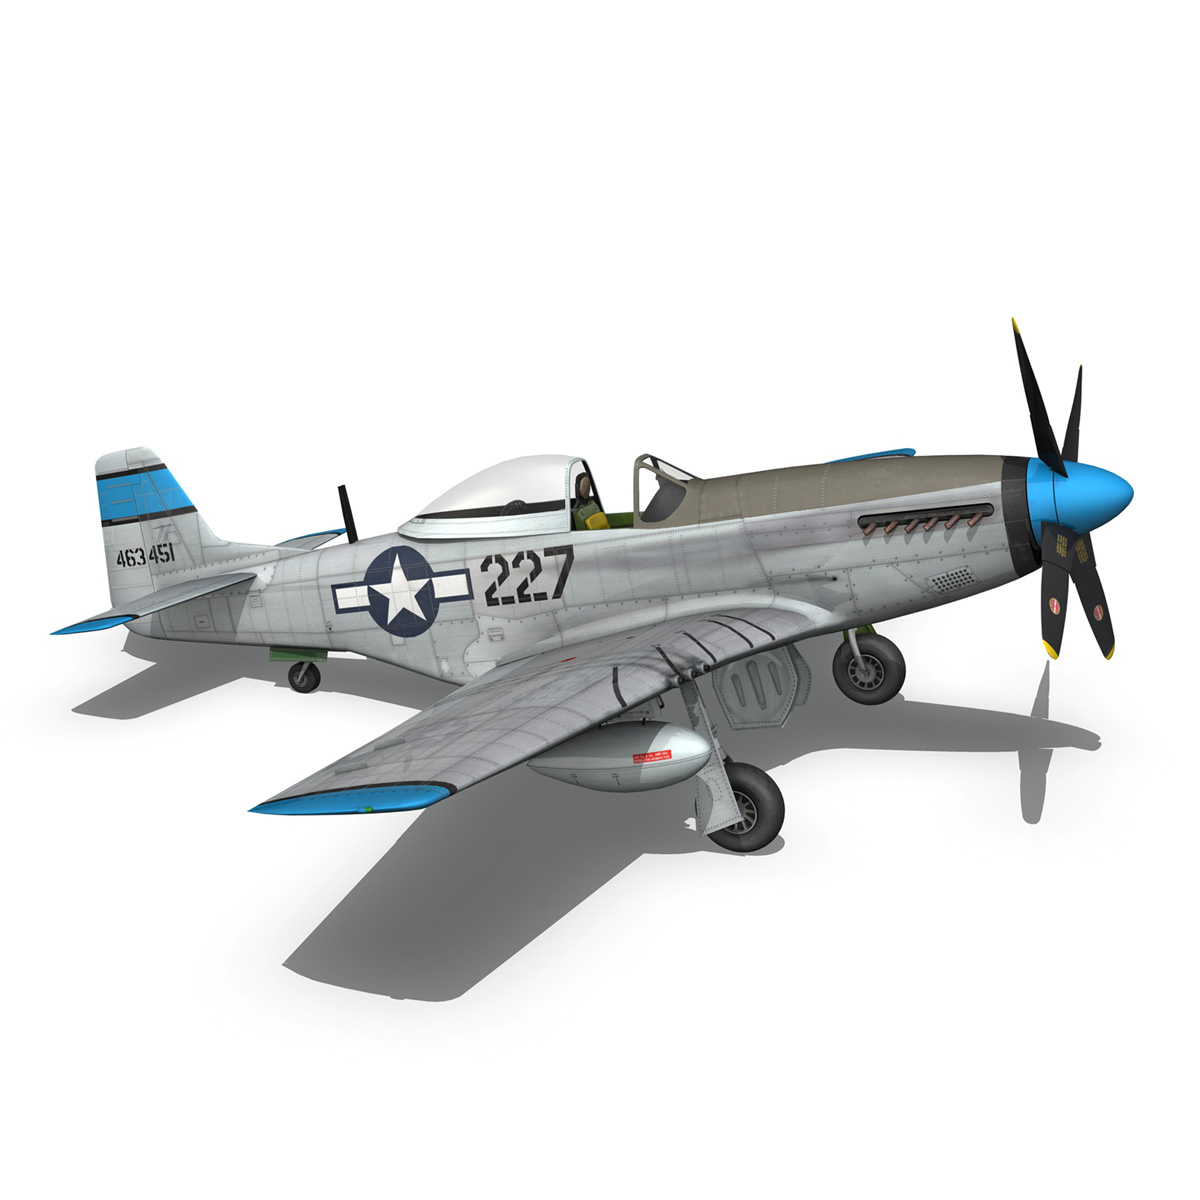 north american p-51d – mustang – mary alyce 3d model 3ds fbx c4d lwo obj 267580